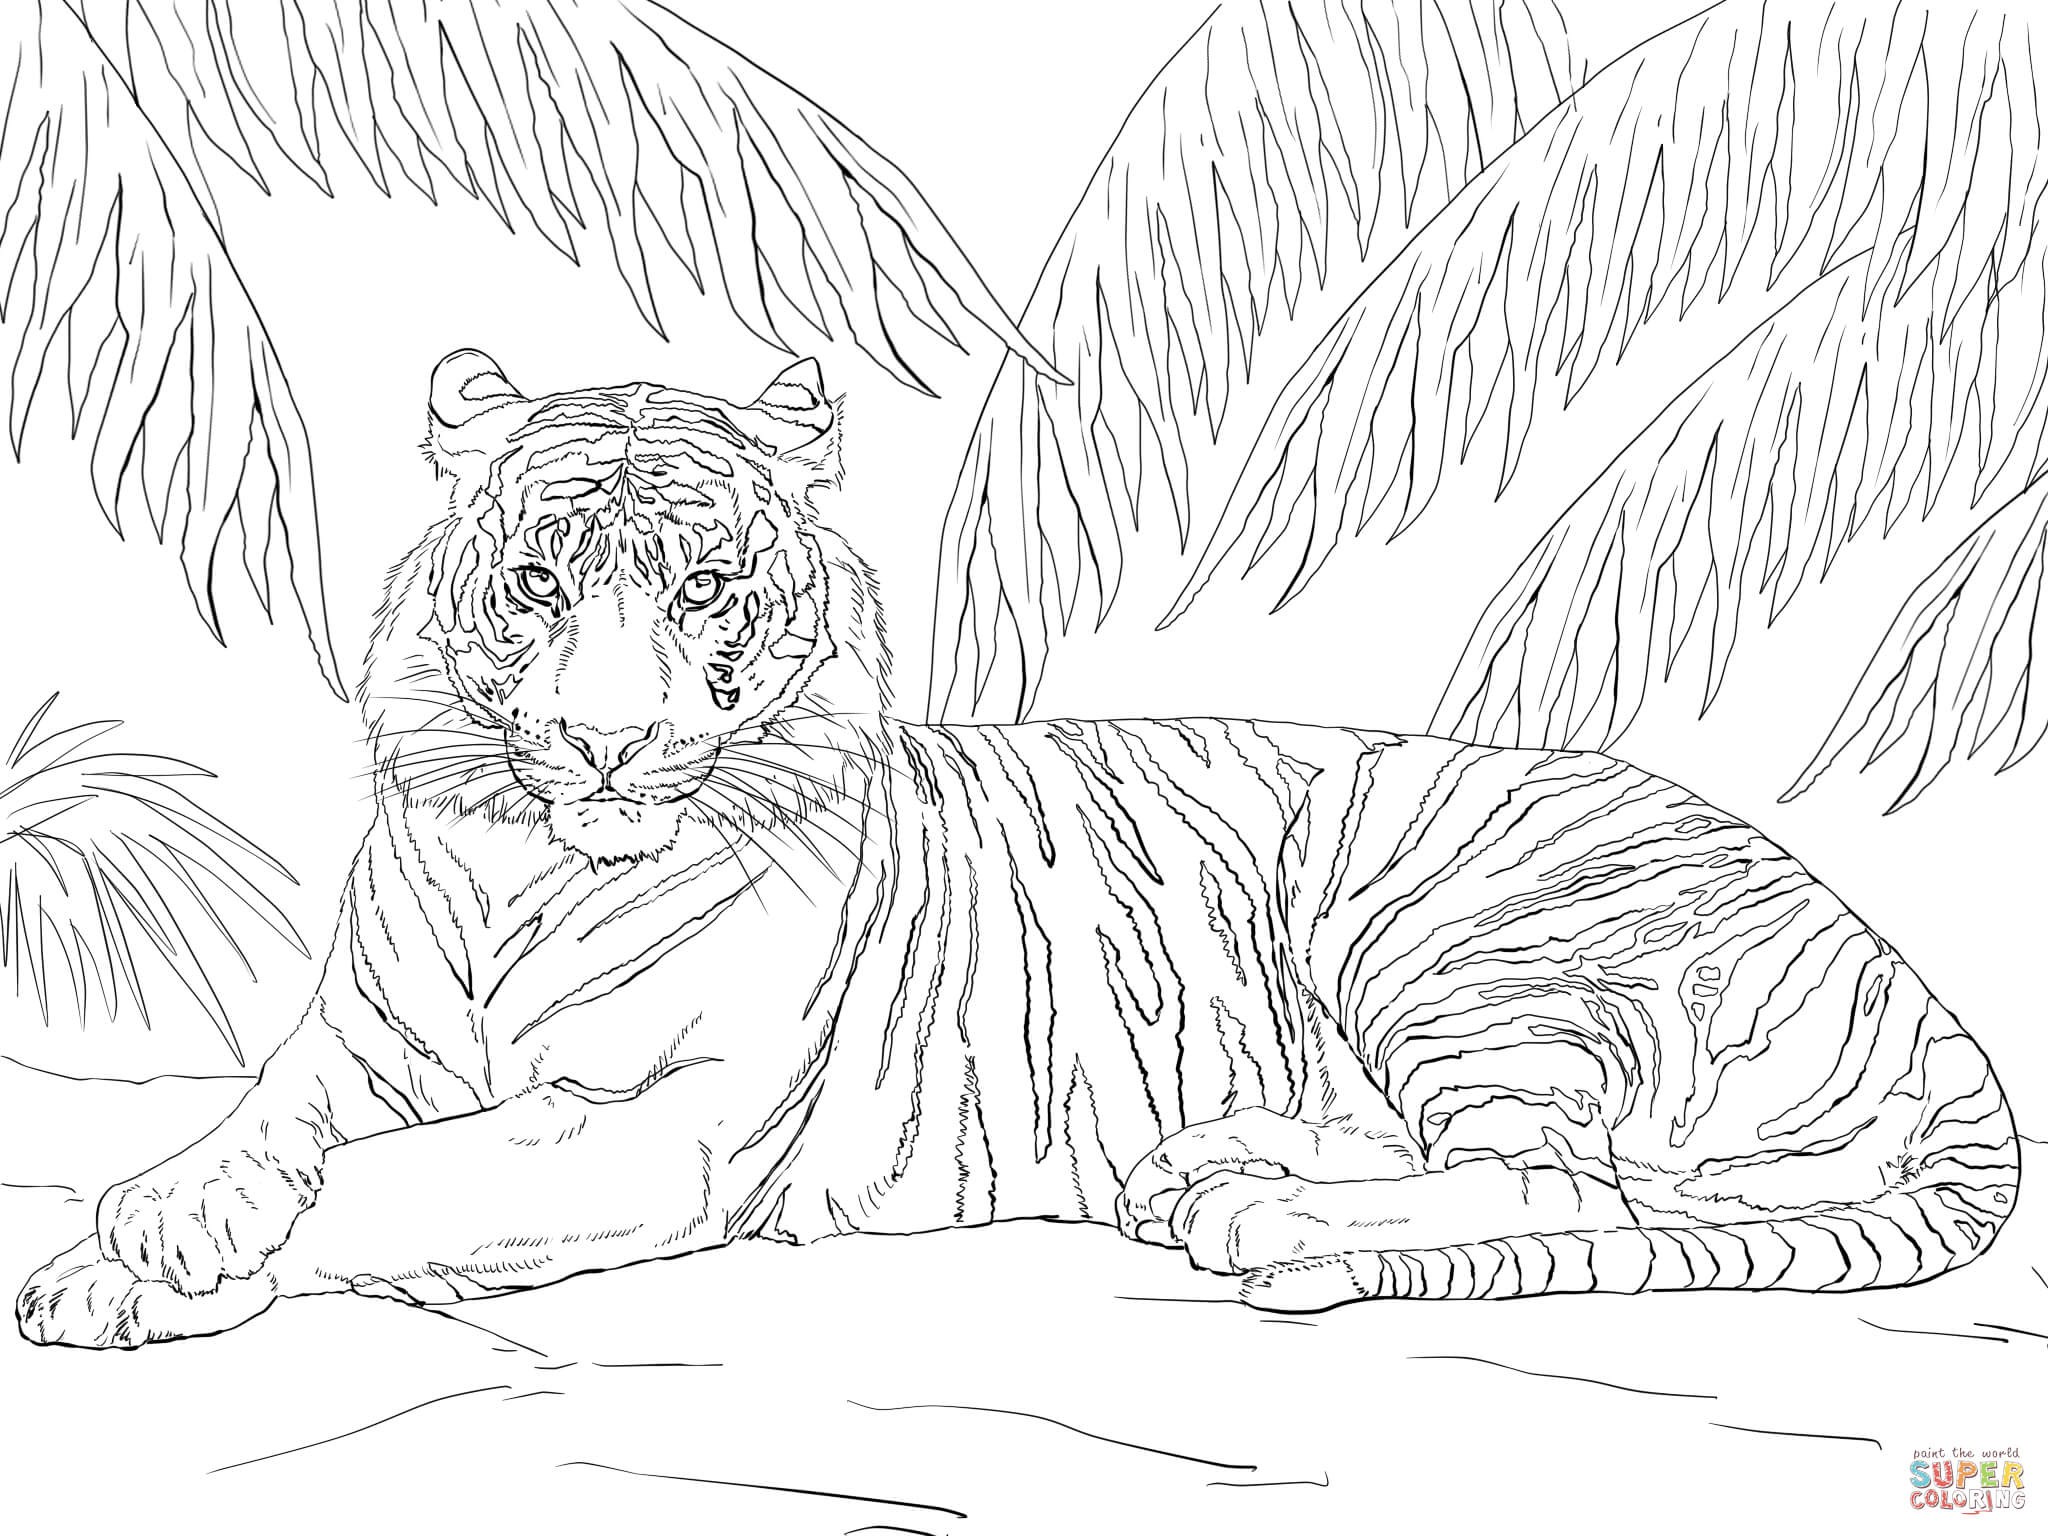 Sumatran Tiger coloring #3, Download drawings